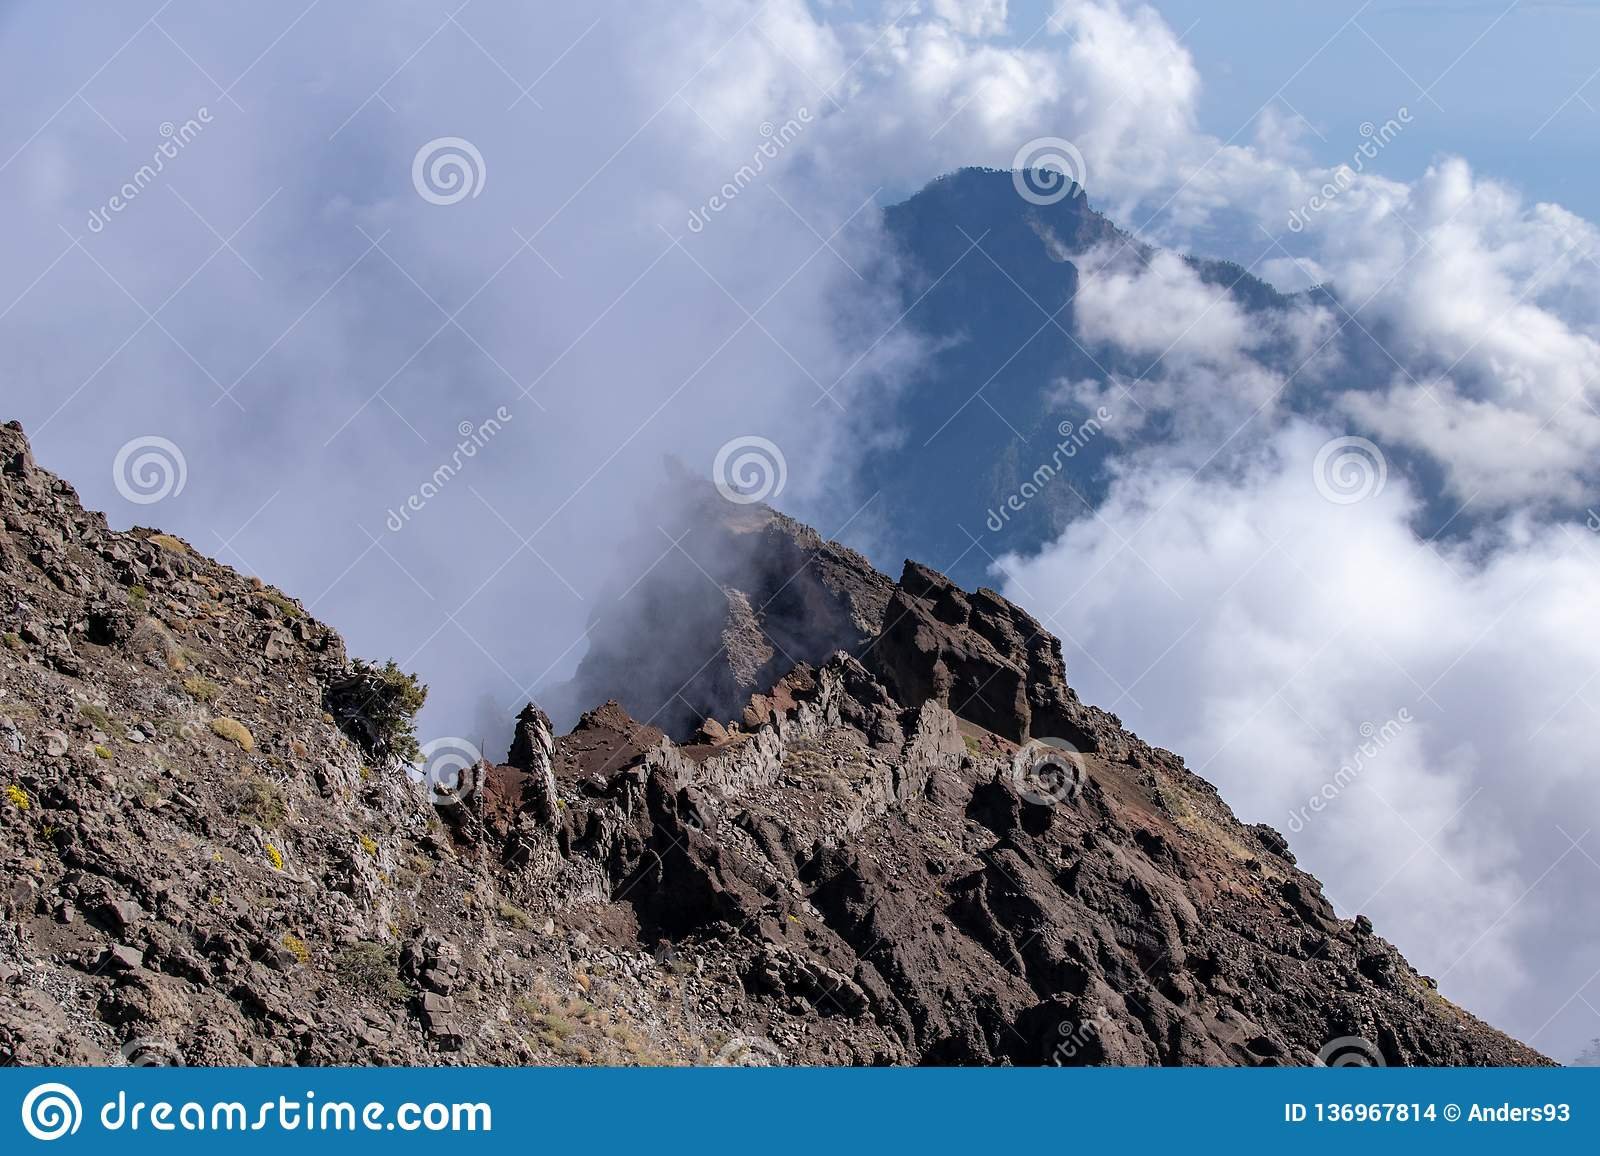 Clouds forming over the mountains and volcanic ridge at Roque de los Muchachos on La Palma, Canary Islands